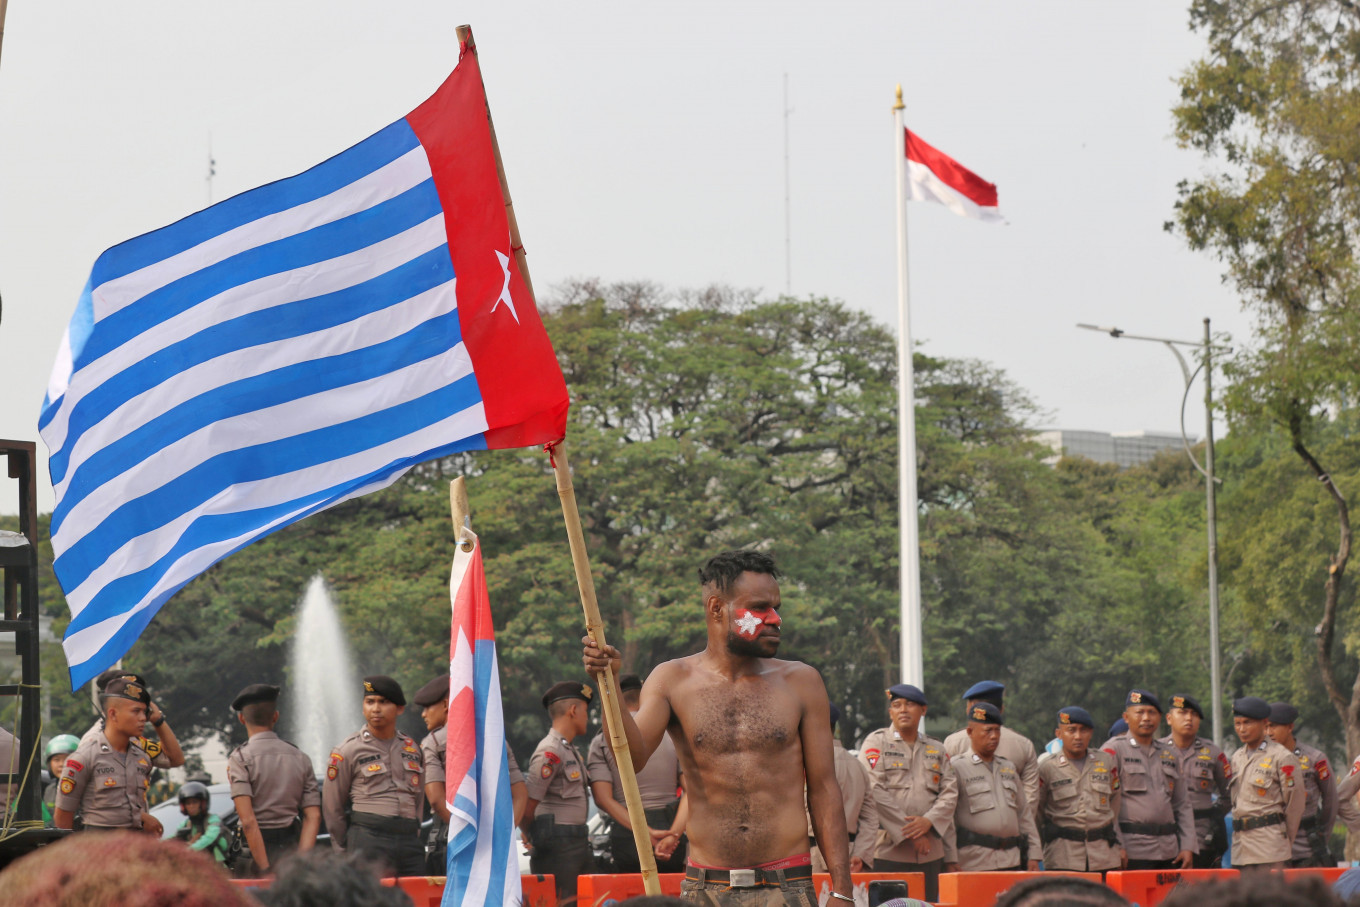 Four Australian citizens deported for being in Papua protests